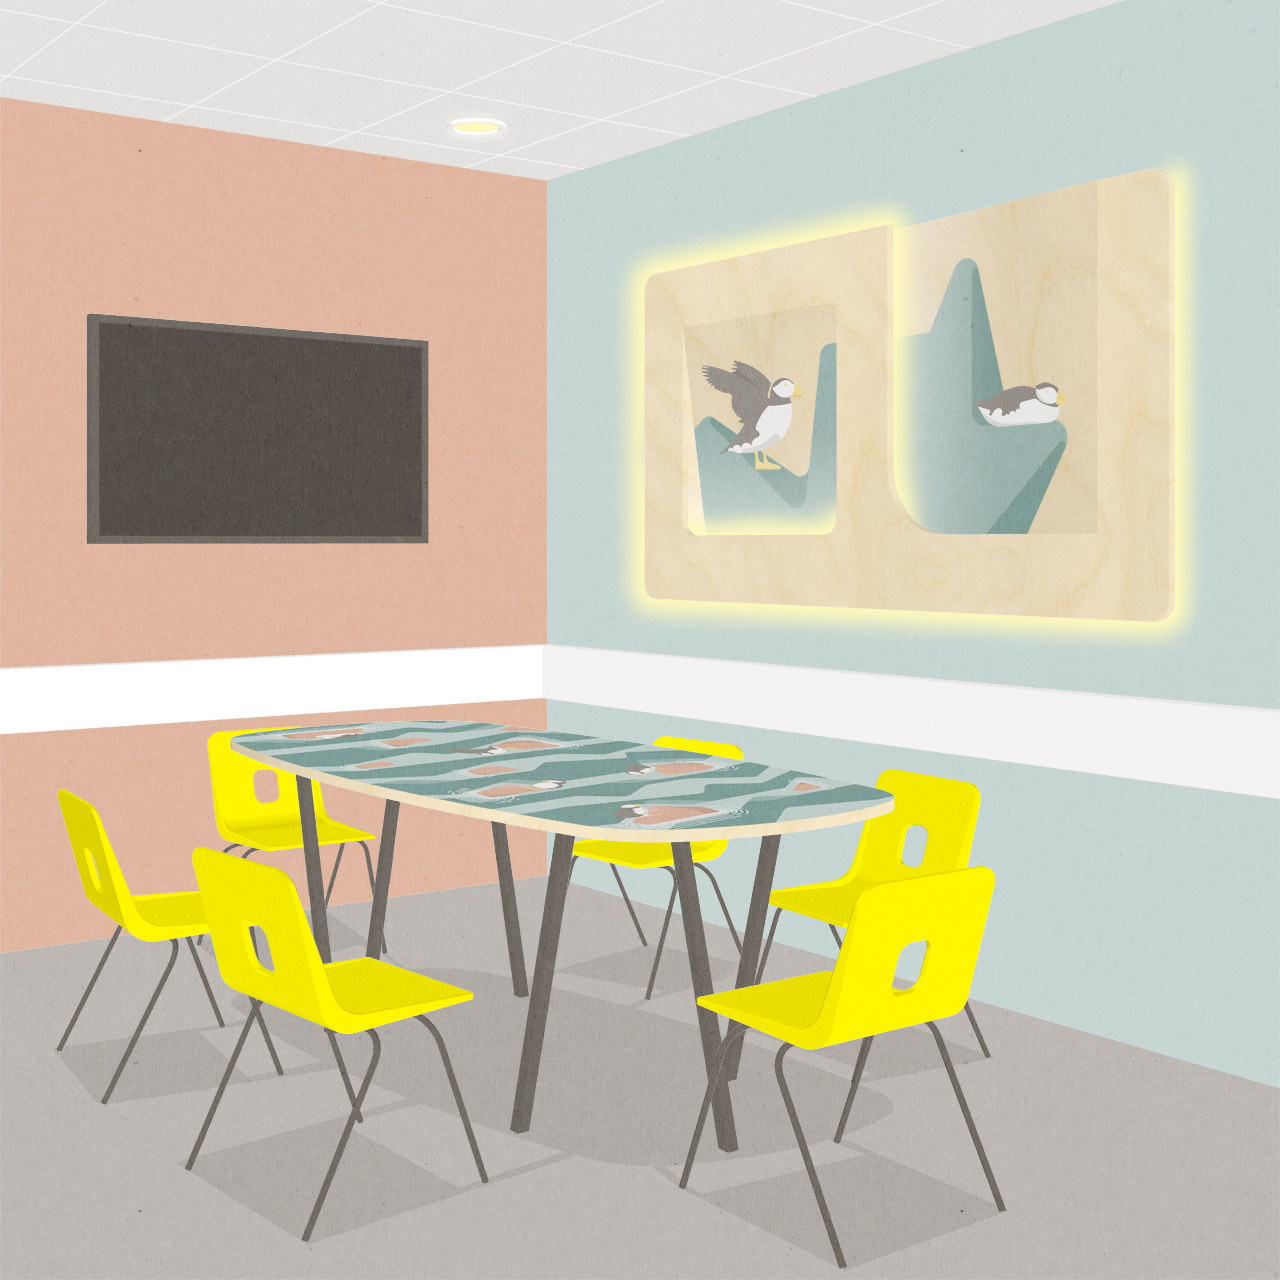 Custom table top and wall illustrations in group room